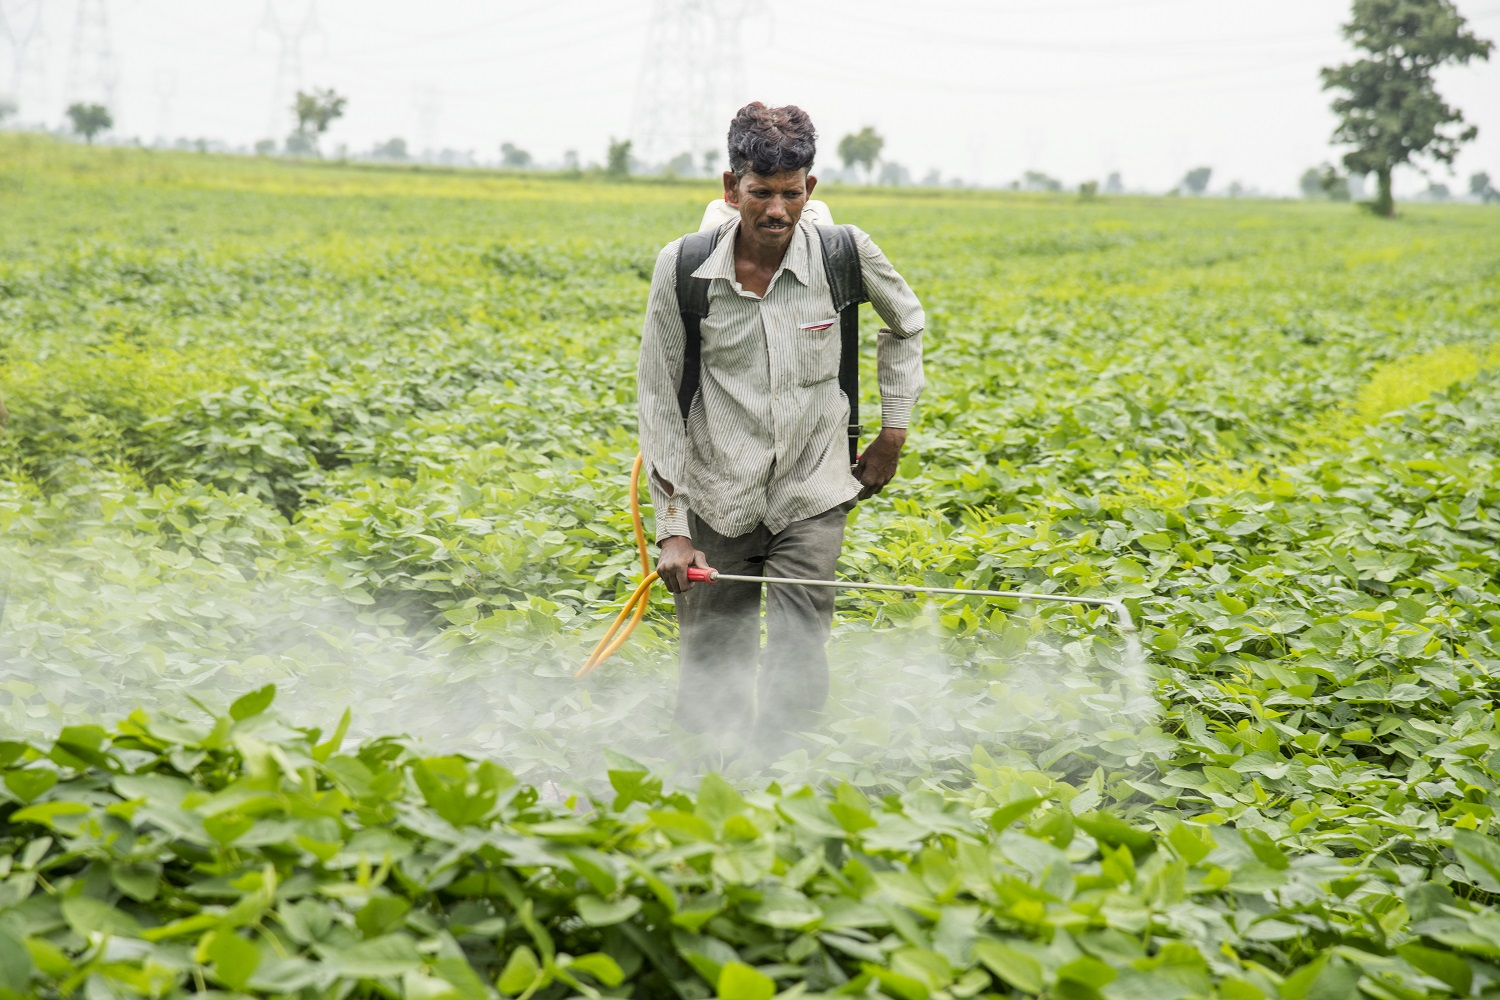 Wearing no PPE when spraying pesticides is common